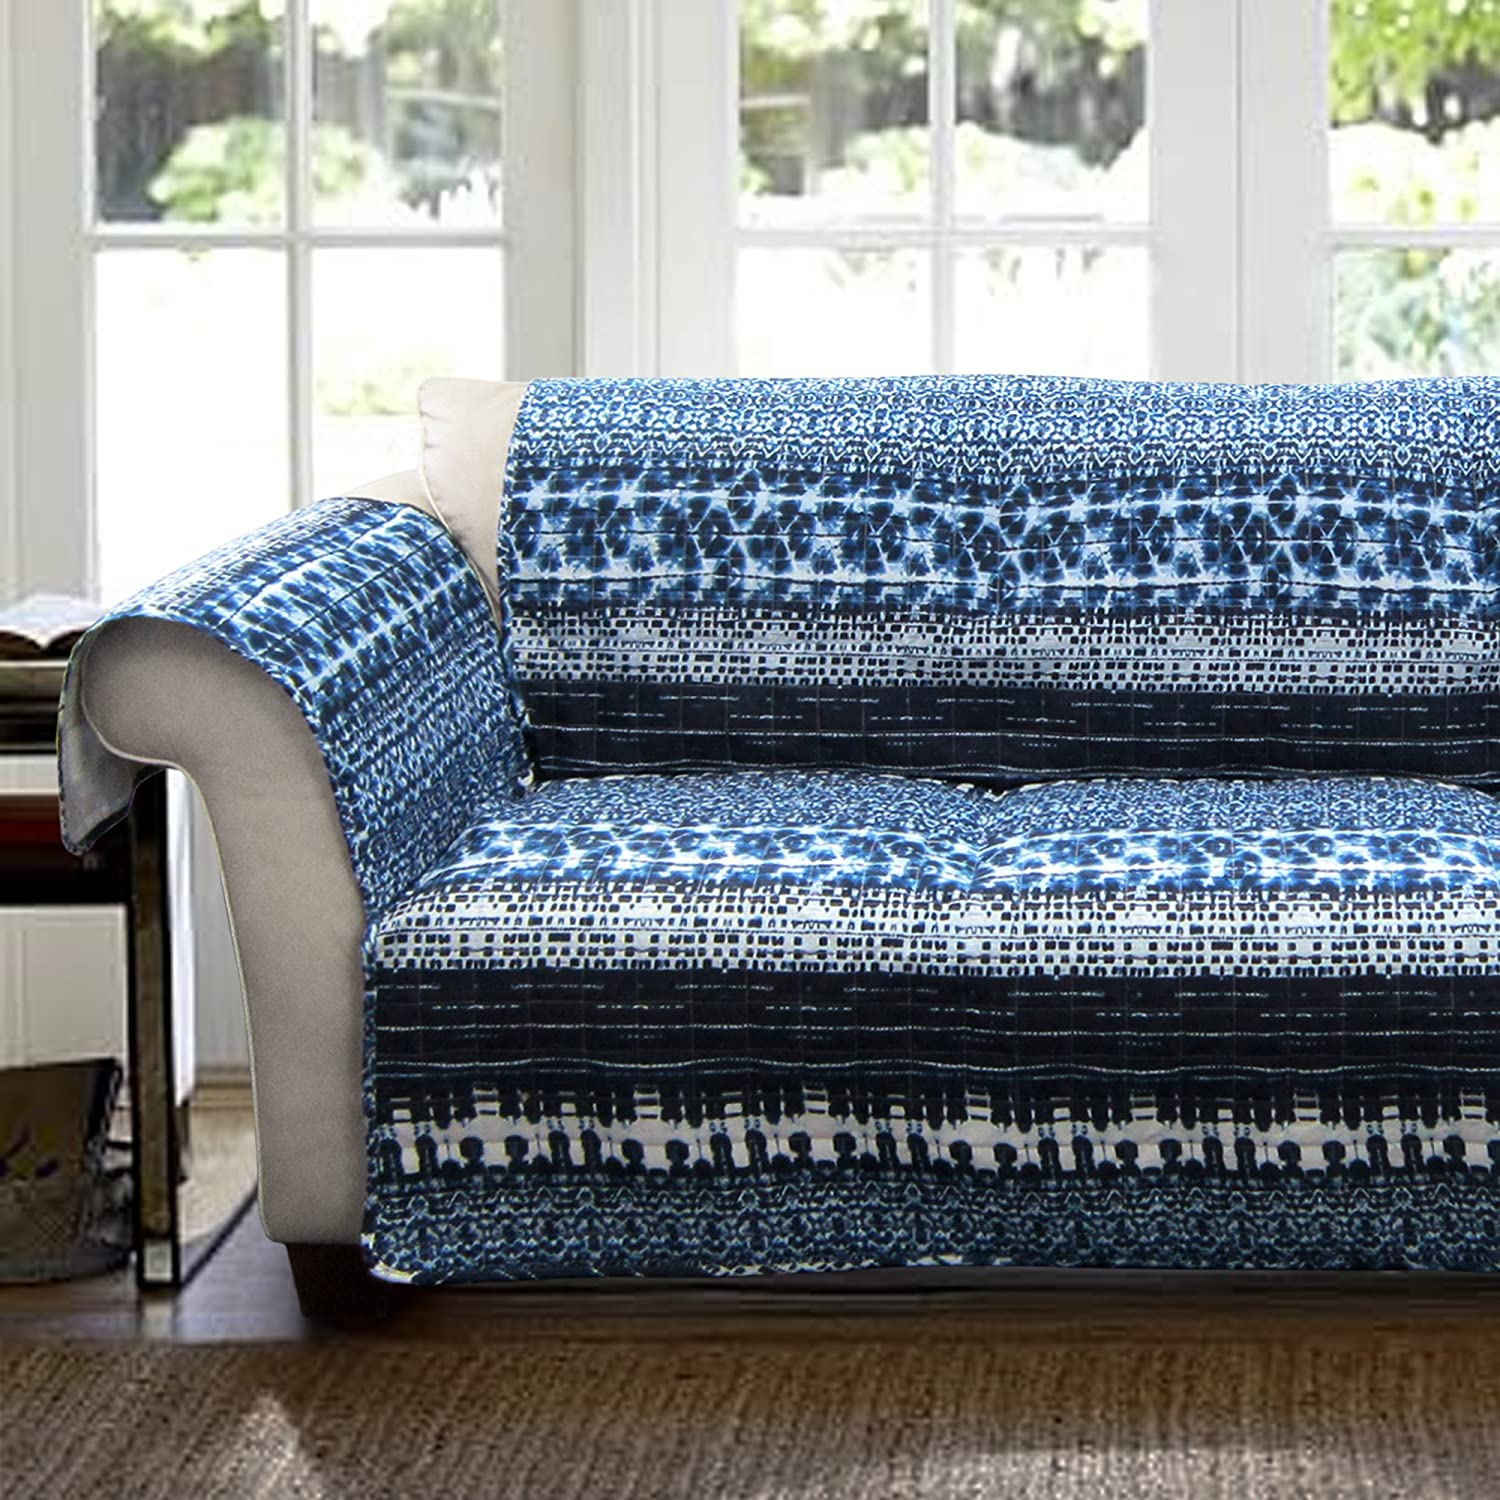 Navy Triangle Home Fashions C28599P14-000 Lush Decor Lambert Tie Dye Slipcover//Furniture Protector for Loveseat